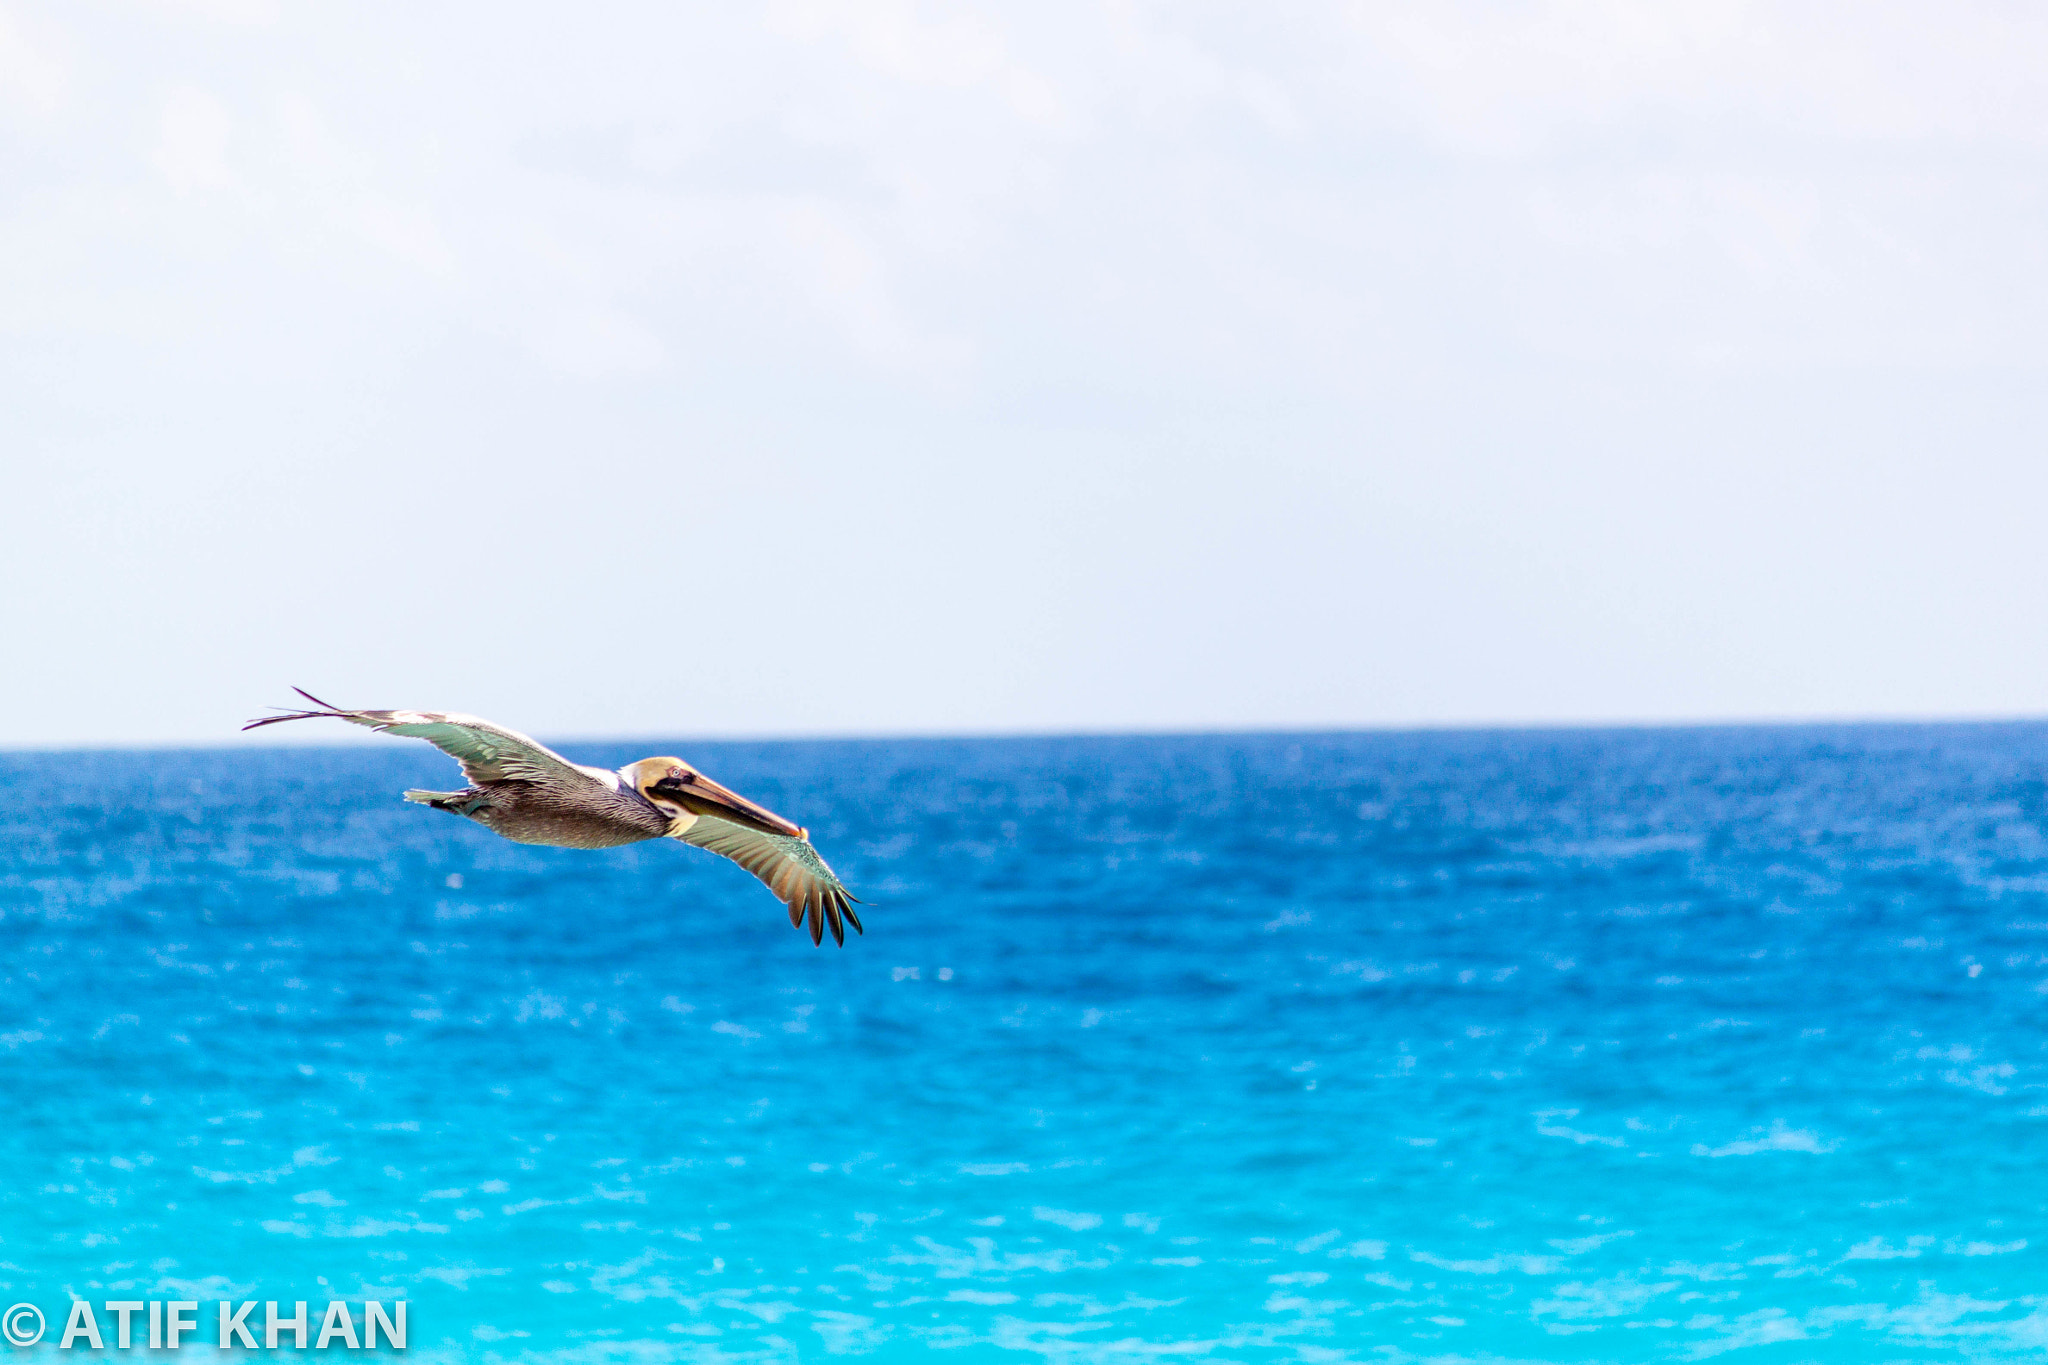 Photograph Pelican Soaring by Atif Khan on 500px